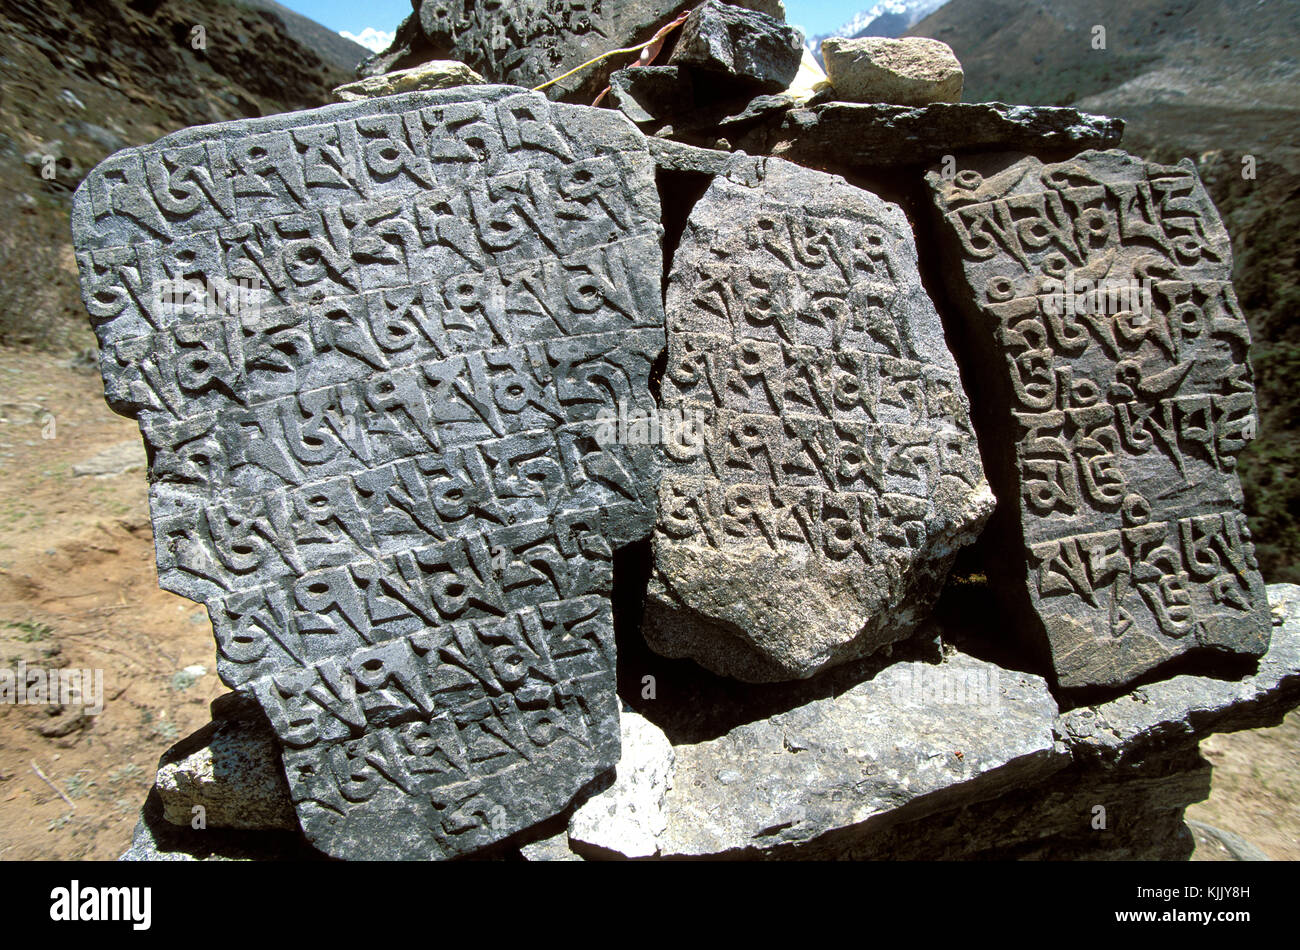 Tibetan mantras engraved on stones along the Nepalese trails